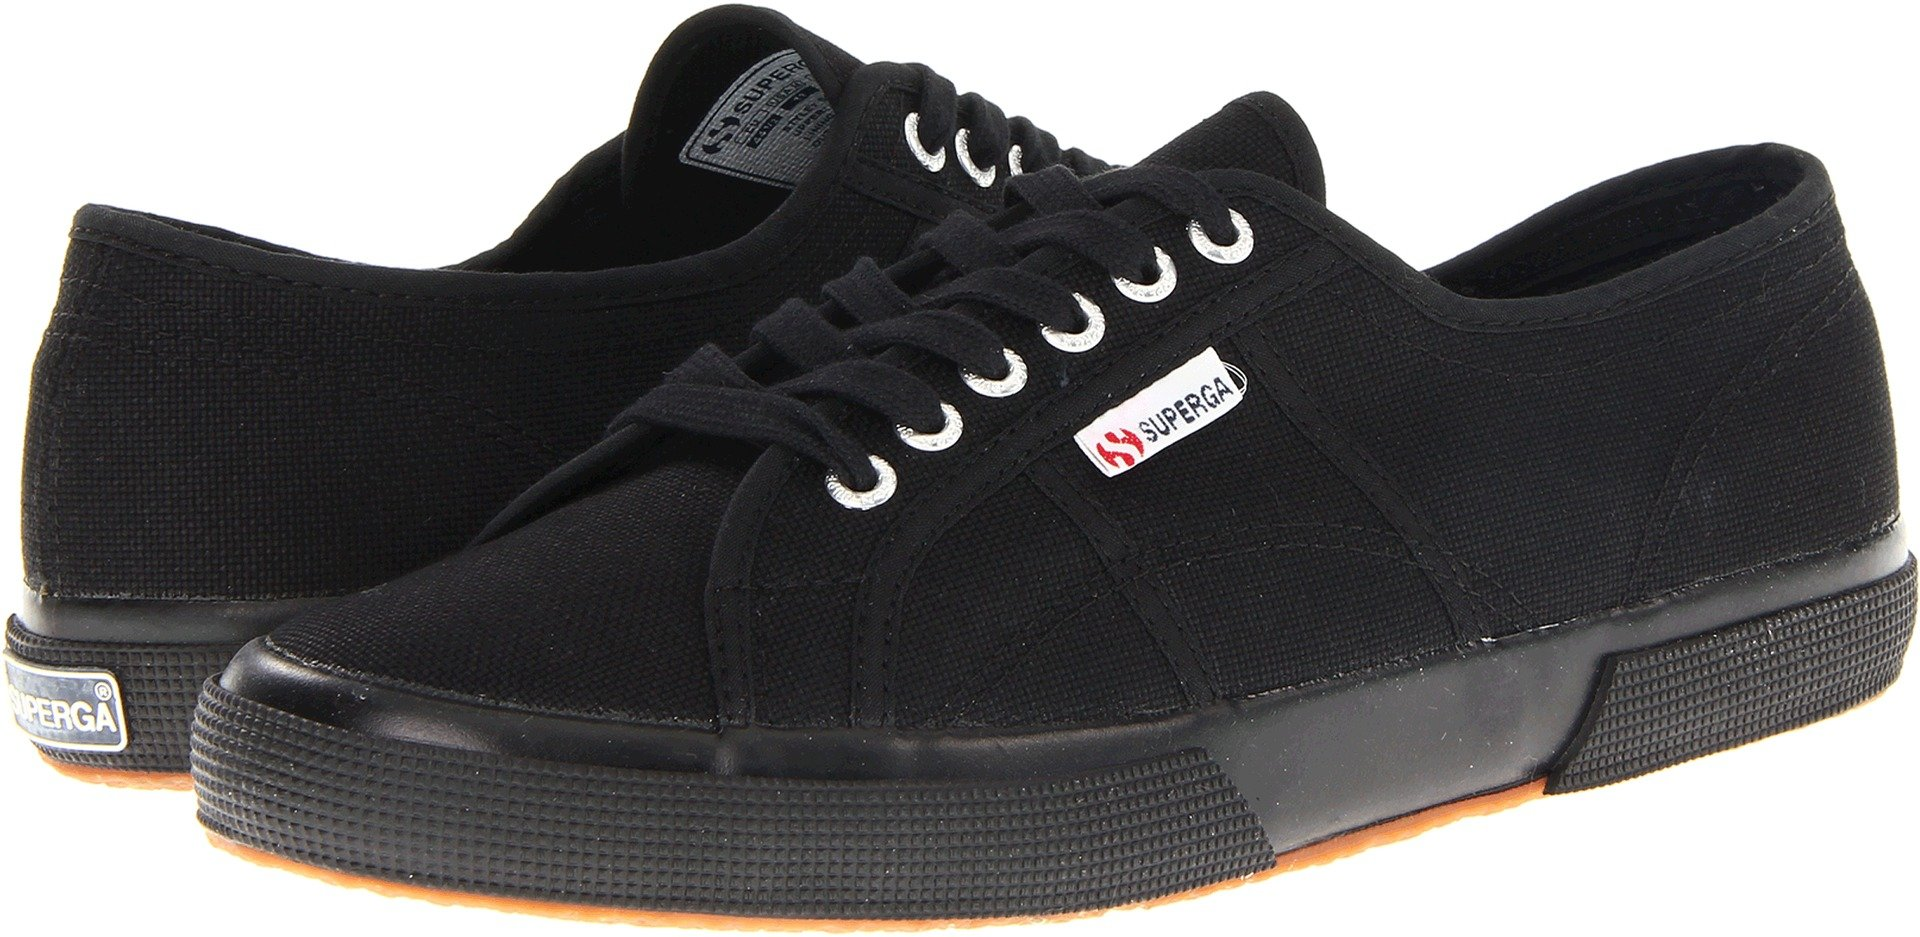 Superga Women's 2750 Cotu Sneaker, Full Black, 37 M EU (6.5 US)